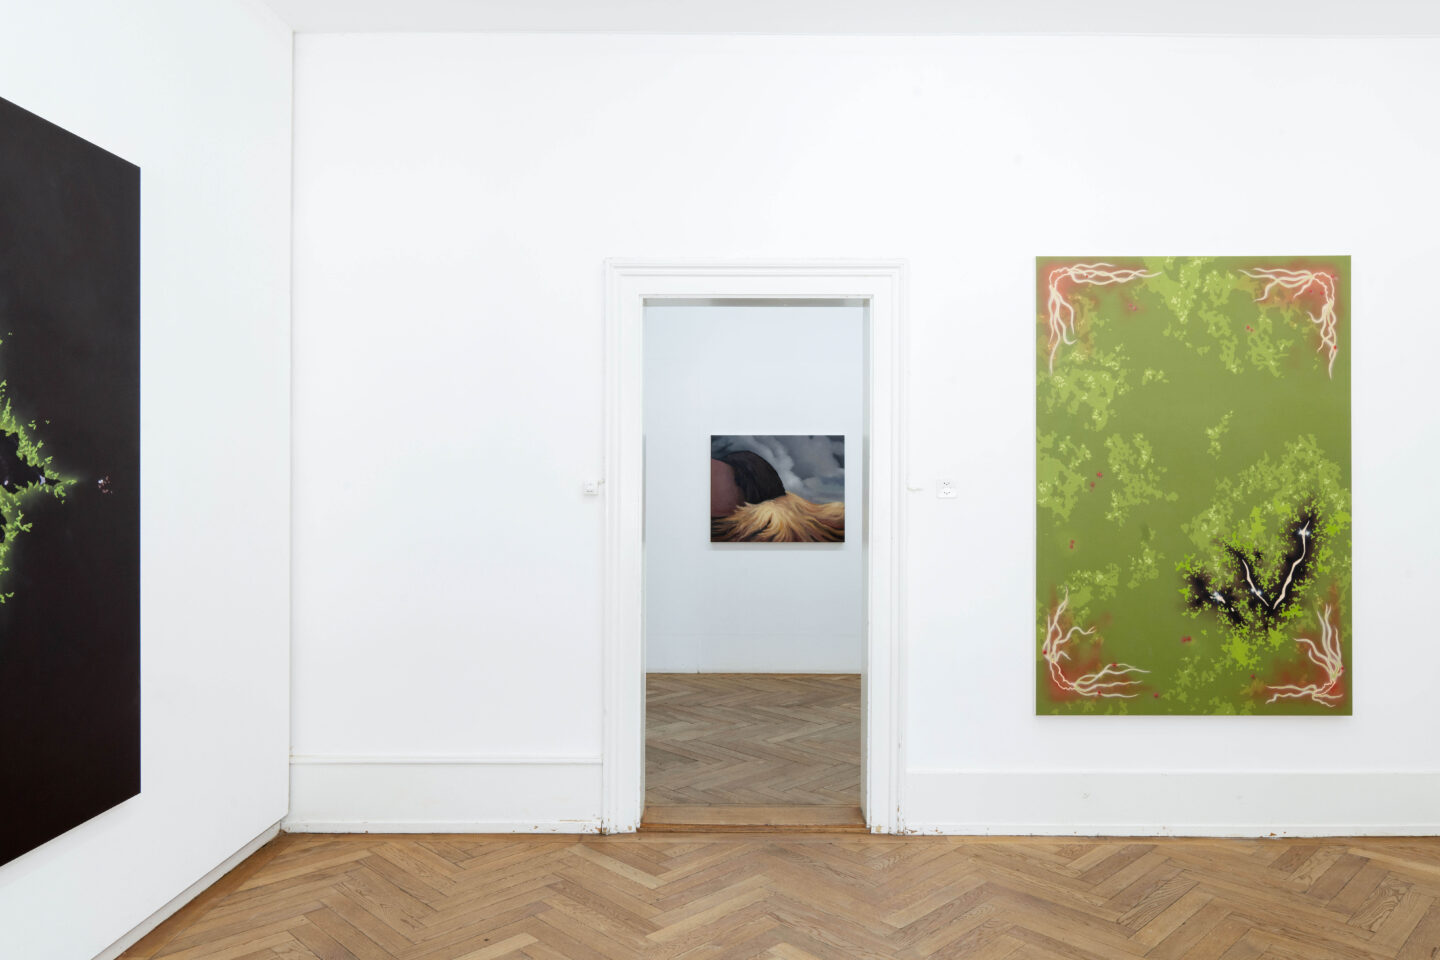 Exhibition View Groupshow «Soft Shell; view on Natacha Donzé» at Kunsthaus Langenthal, Langenthal, 2020 / Photo: CE / Courtesy: the artists and Kunsthaus Langenthal